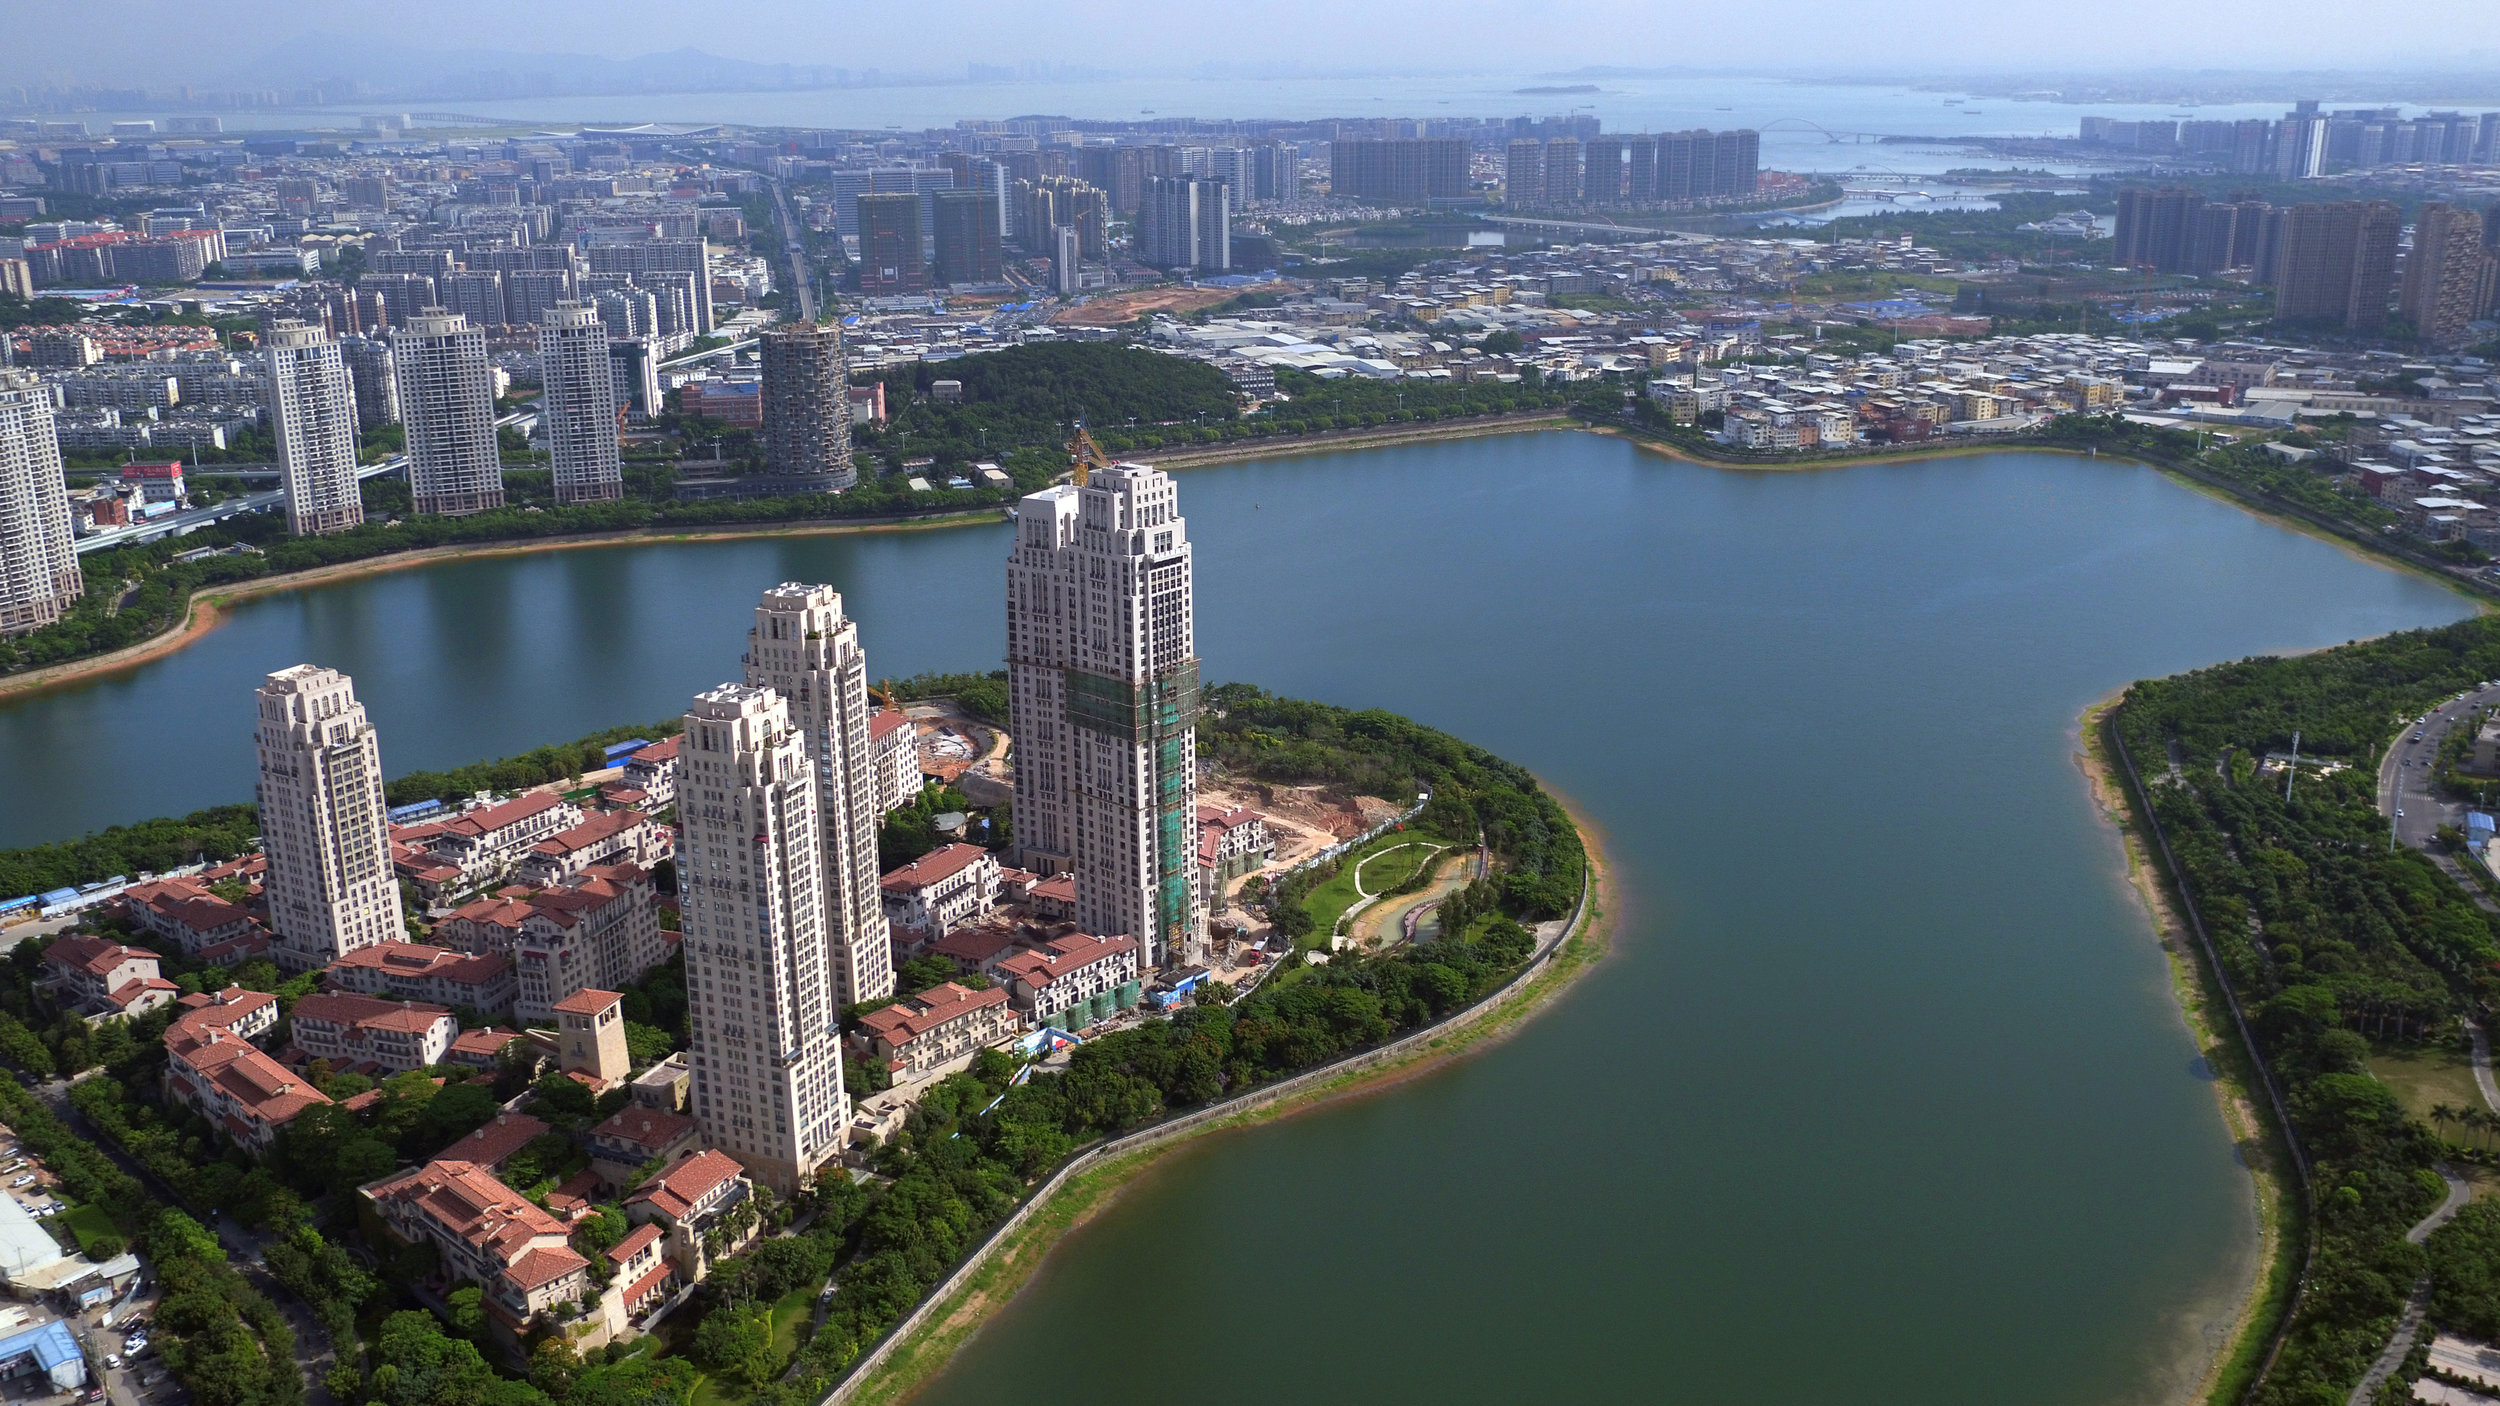 Heart of Lake, Xiamen, China, nearing completion